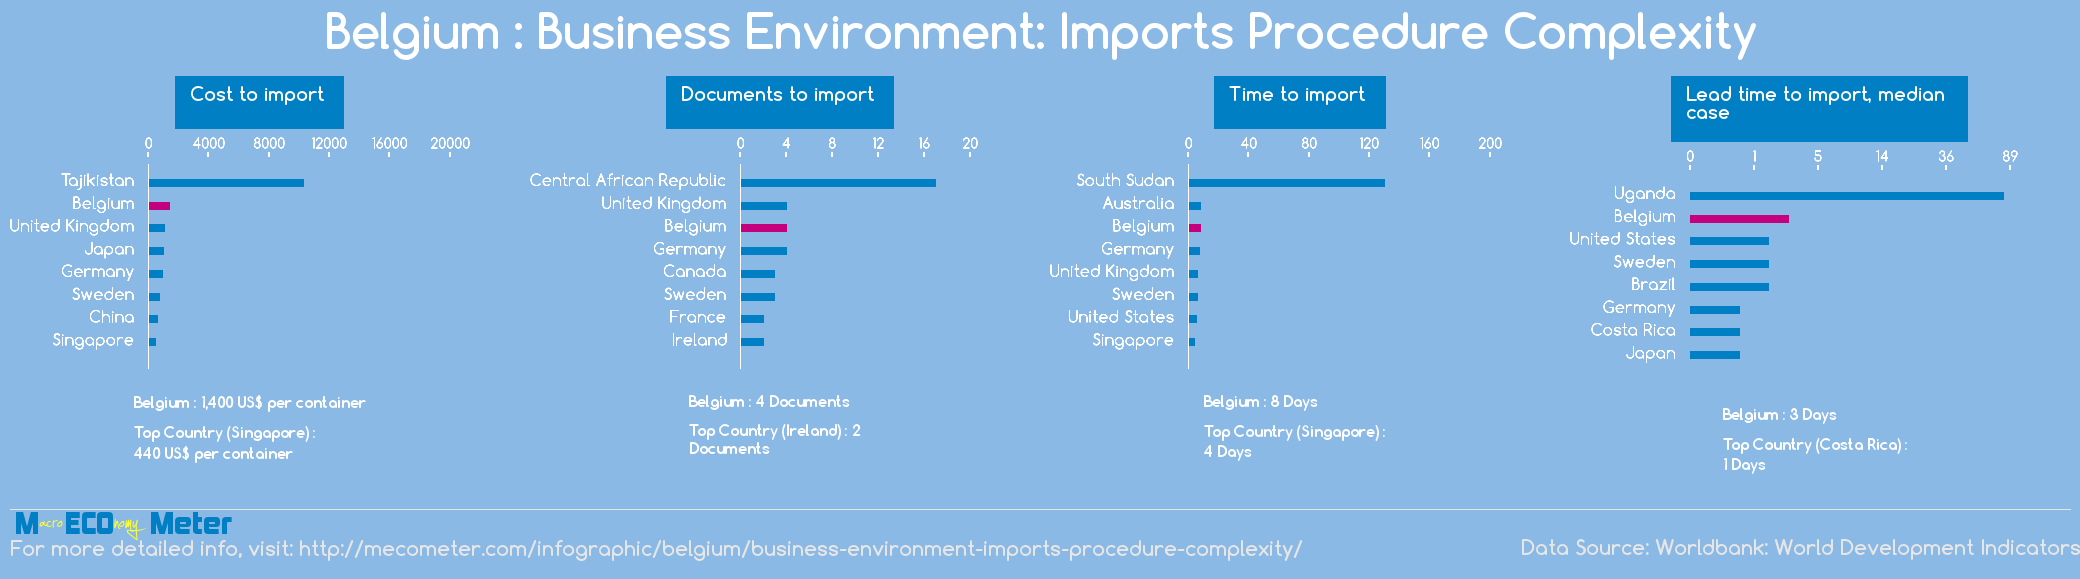 Belgium : Business Environment: Imports Procedure Complexity